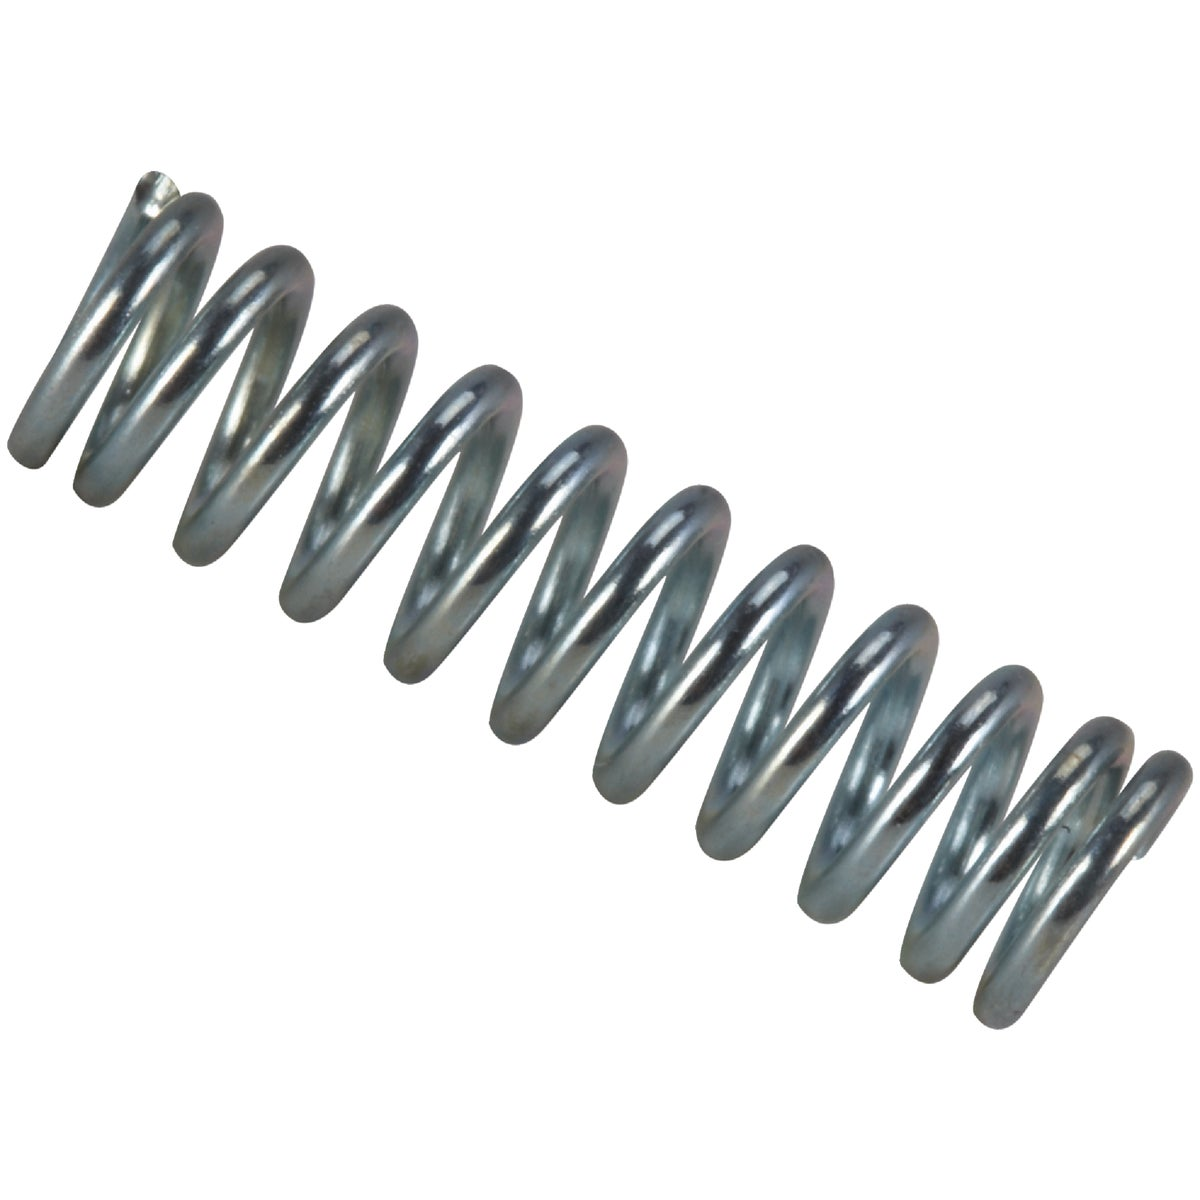 COMPRESSION SPRING - C-516 by Century Spring Corp